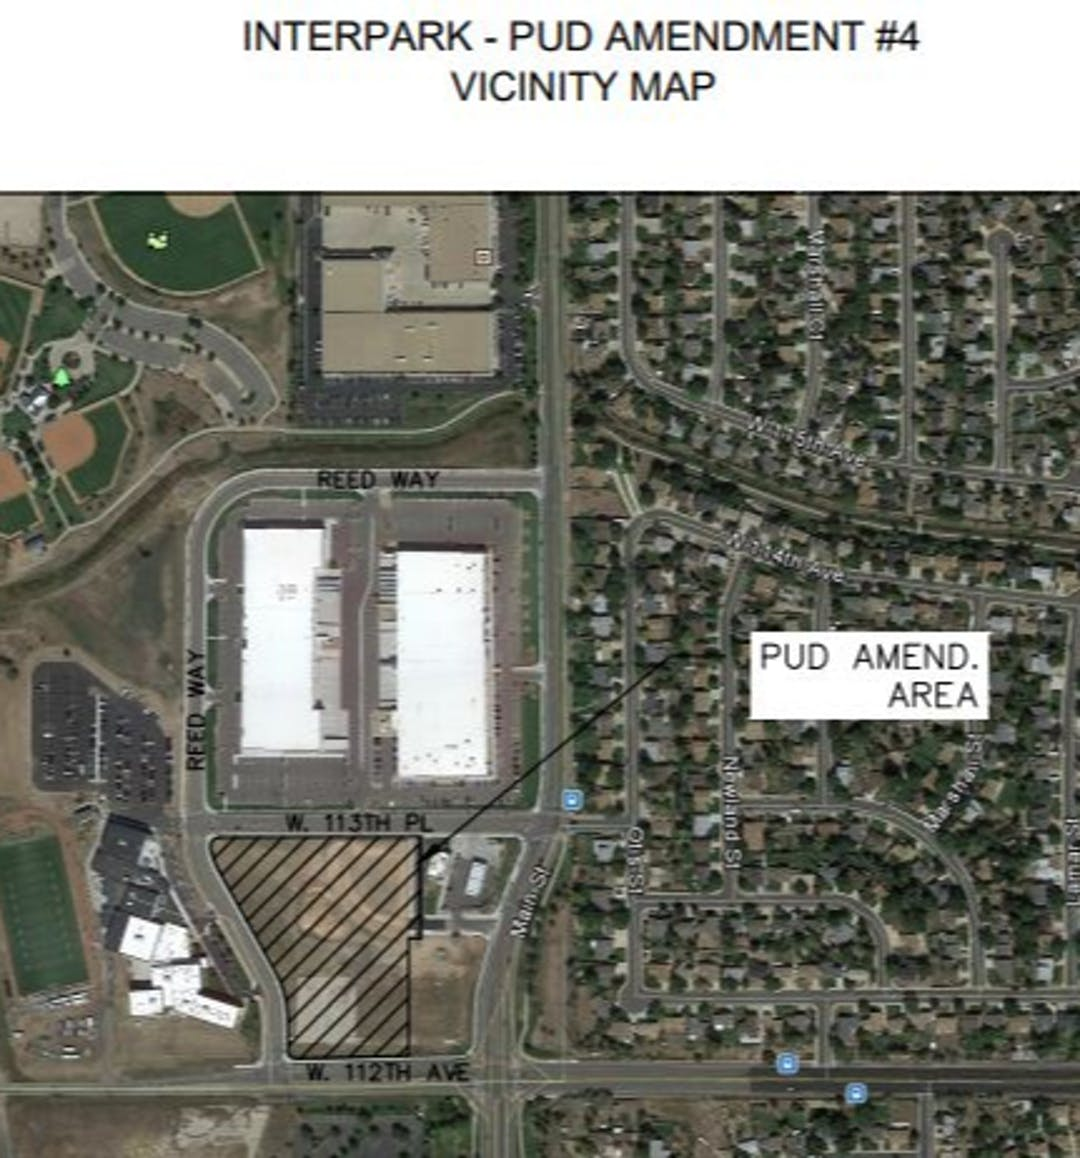 To permit Light Industrial Land Uses on Lot 1, Block 1 of Interpark Filing 1 Replat C and allow data centers in the light industrial land use description within the overall PUD Plan.